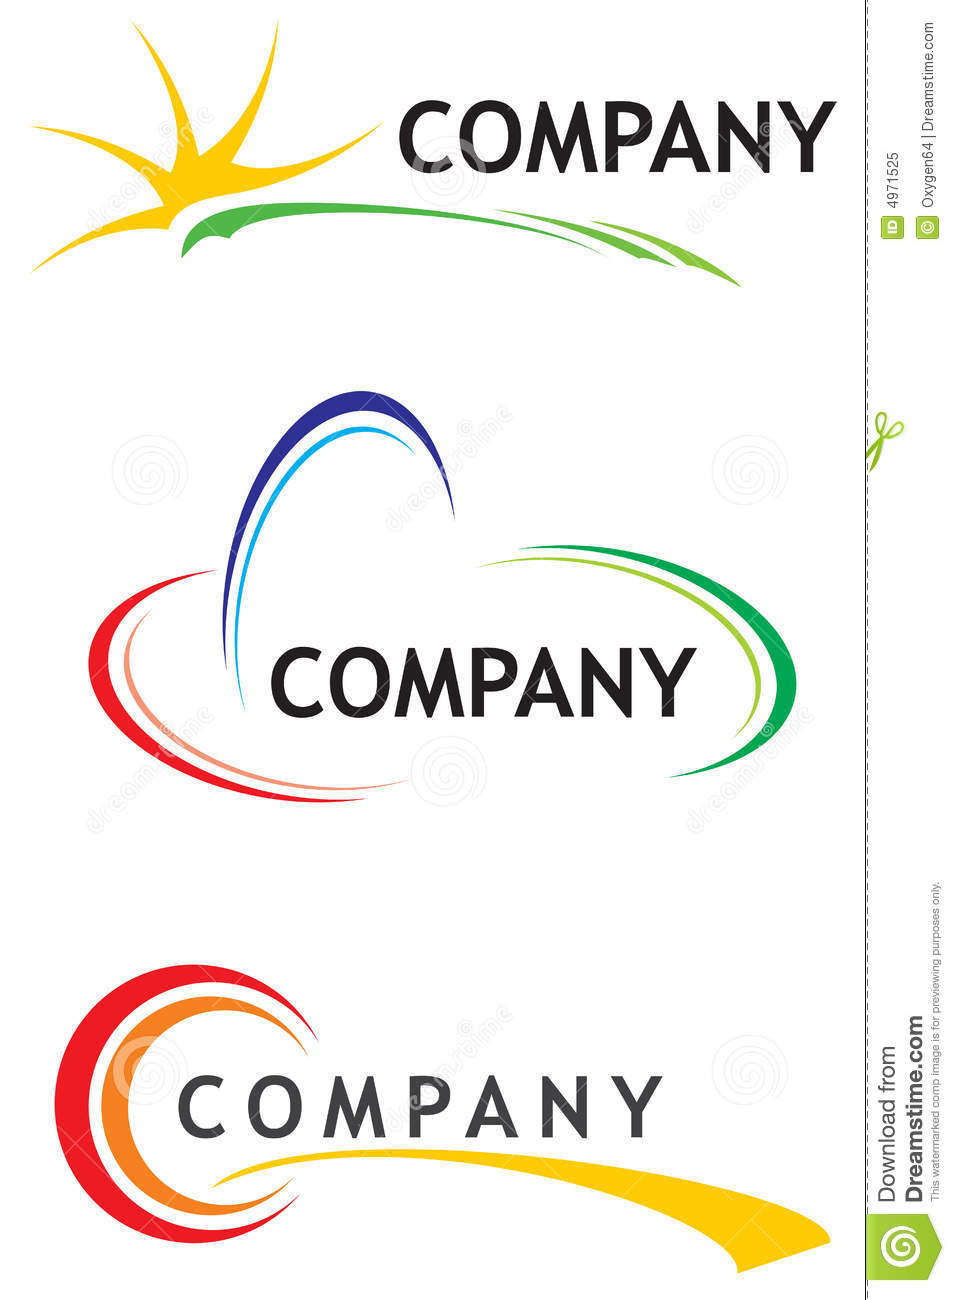 Business Logo Design » Business Logo Design Templates - Creative ... for Corporate Logo Design Samples  17lplyp